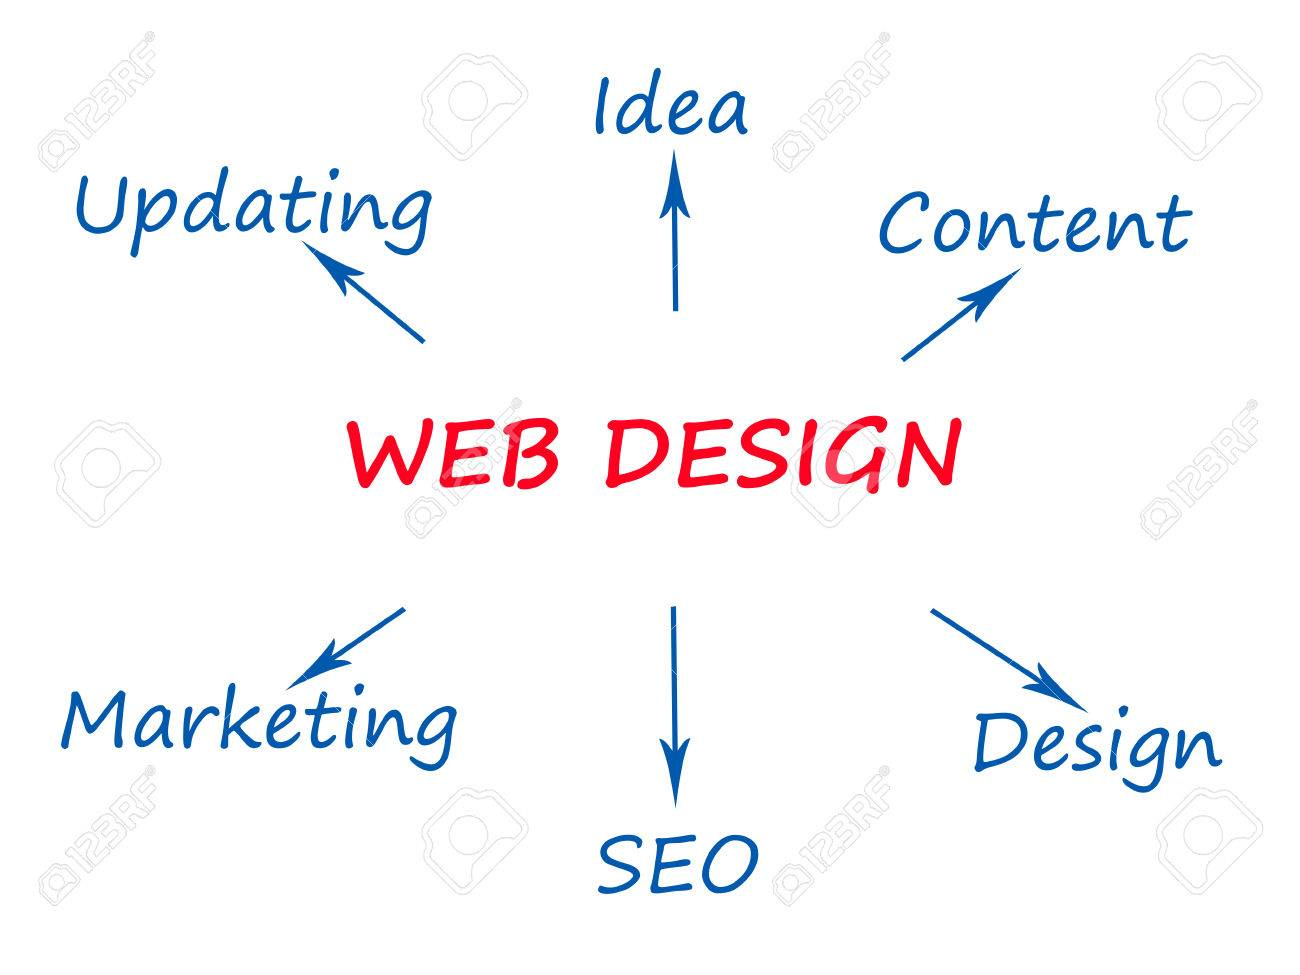 Web design most related keywords Stock Photo - 27530306